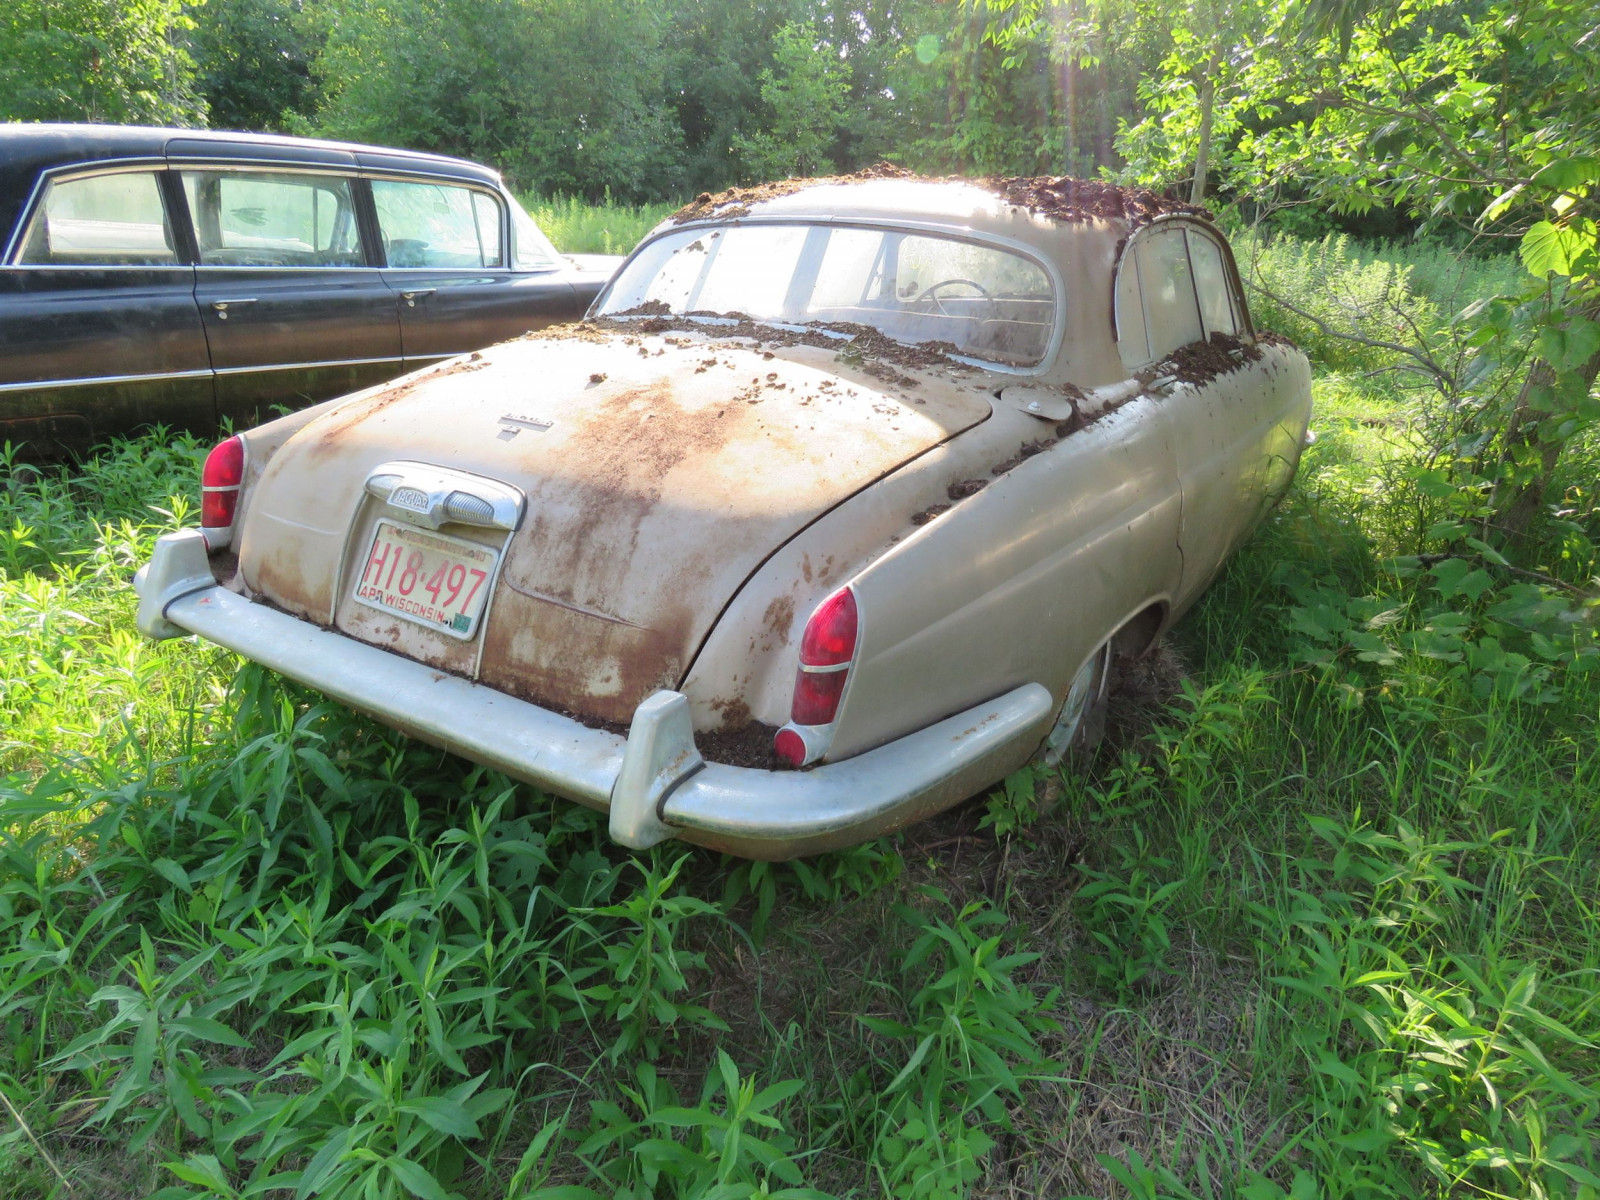 1966 Jaguar 4.2 4dr Sedan - Image 3